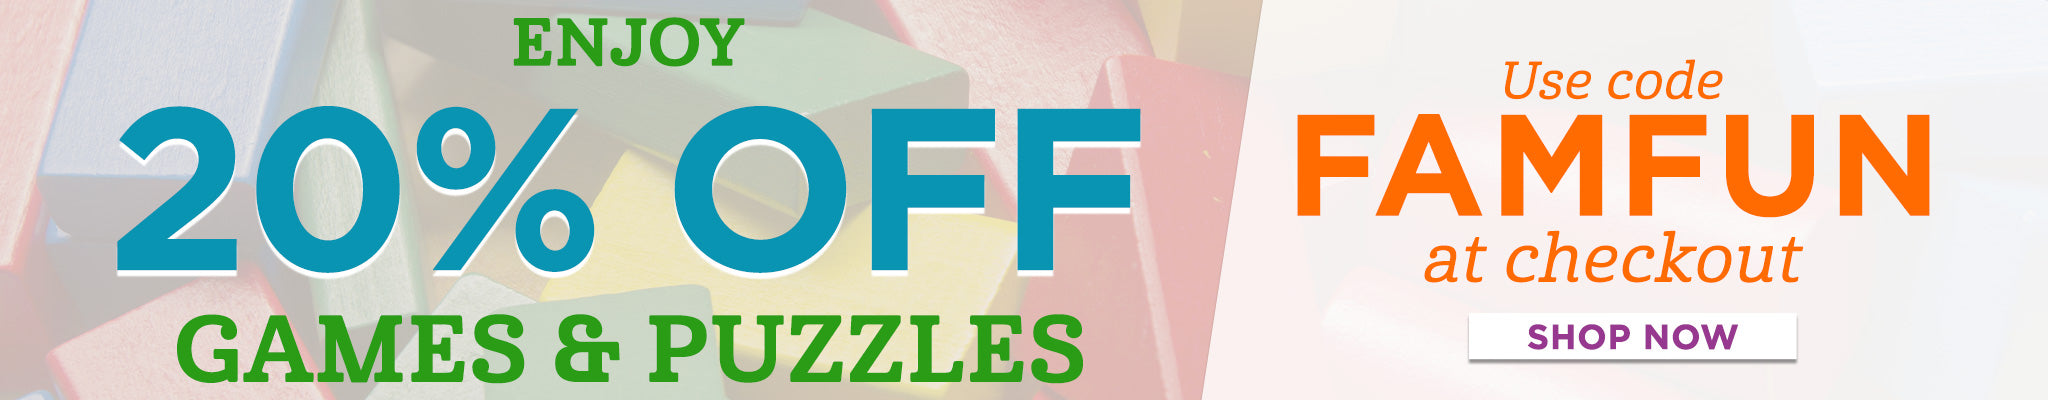 20% OFF Games & Puzzles Collection | Use Code FAMFUN